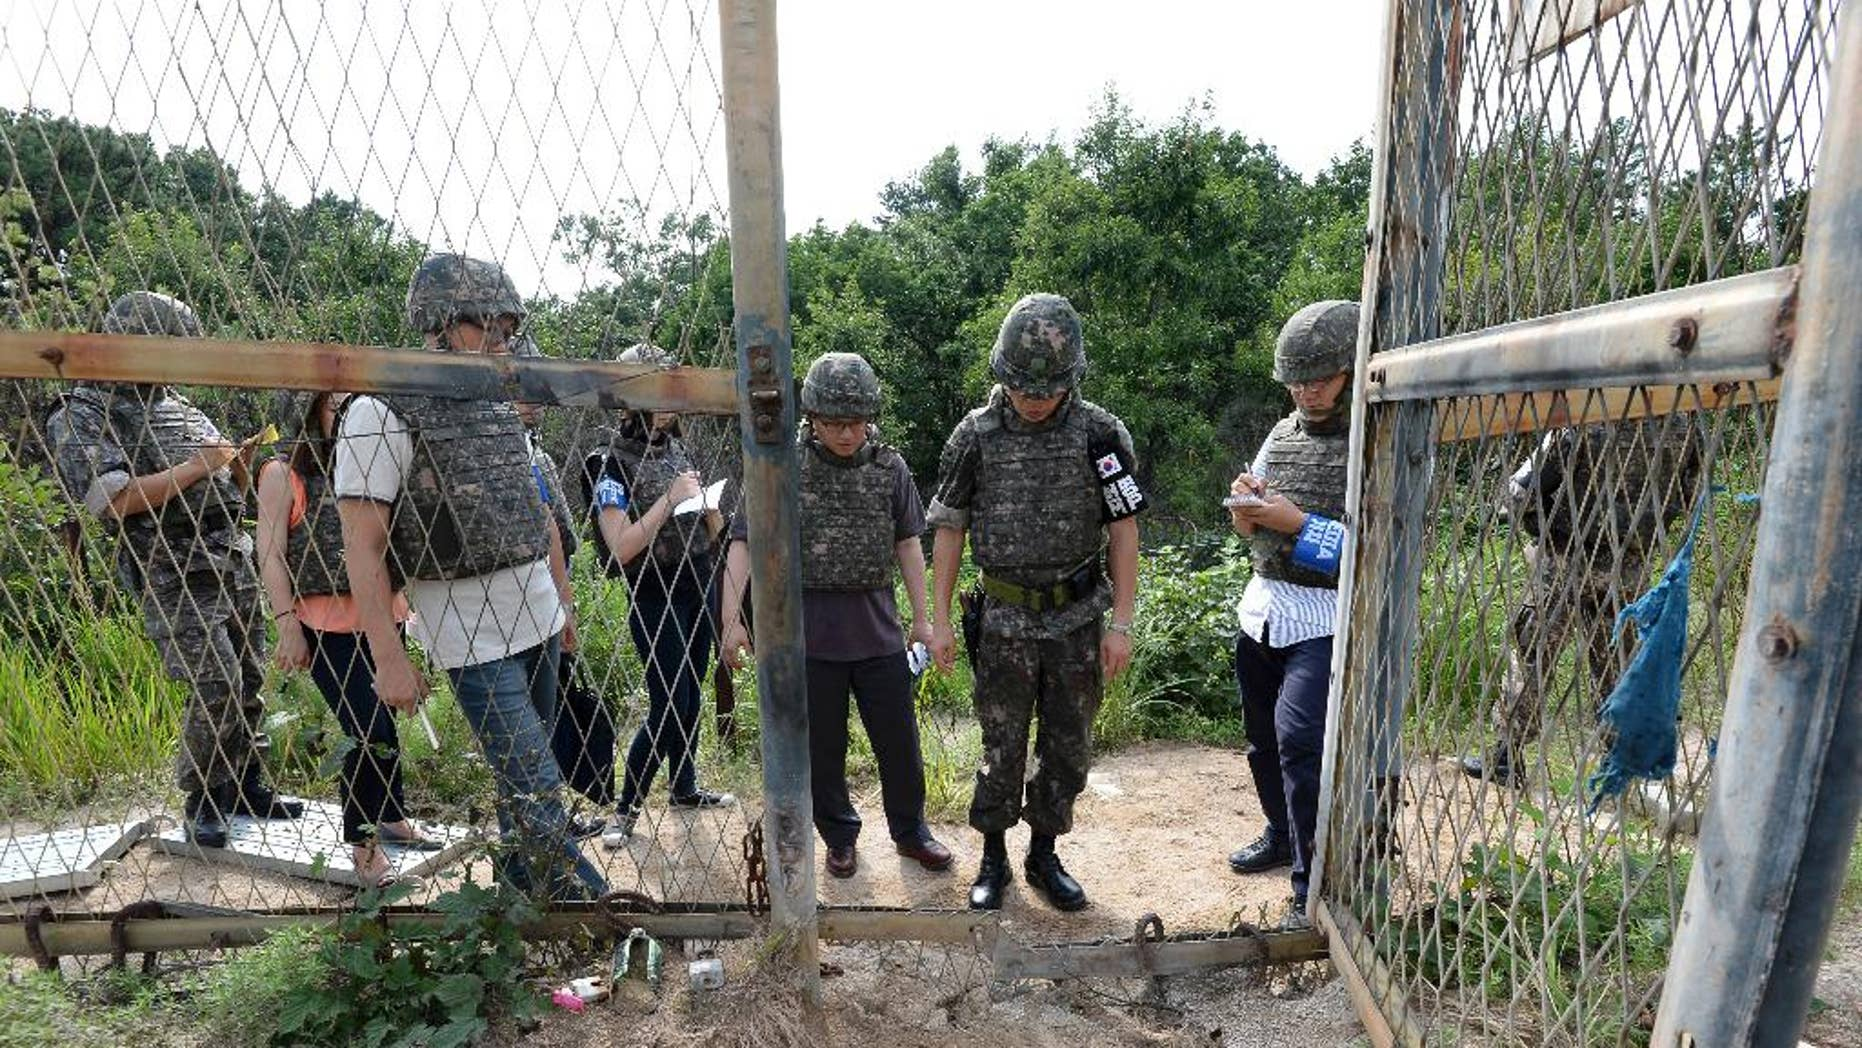 """FILE - In this Aug. 9, 2015 file photo provided by the Defense Ministry, an unidentified South Korean army official, second from right, gives a briefing to the media at the scene of a blast inside the demilitarized zone in Paju, South Korea. North Korea insisted Tuesday, Sept. 1, 2015 that its recent expression of """"regret"""" over a mine explosion that maimed two South Korean soldiers was not an apology, as Seoul claims it was. (The Defense Ministry via AP, FIle)"""